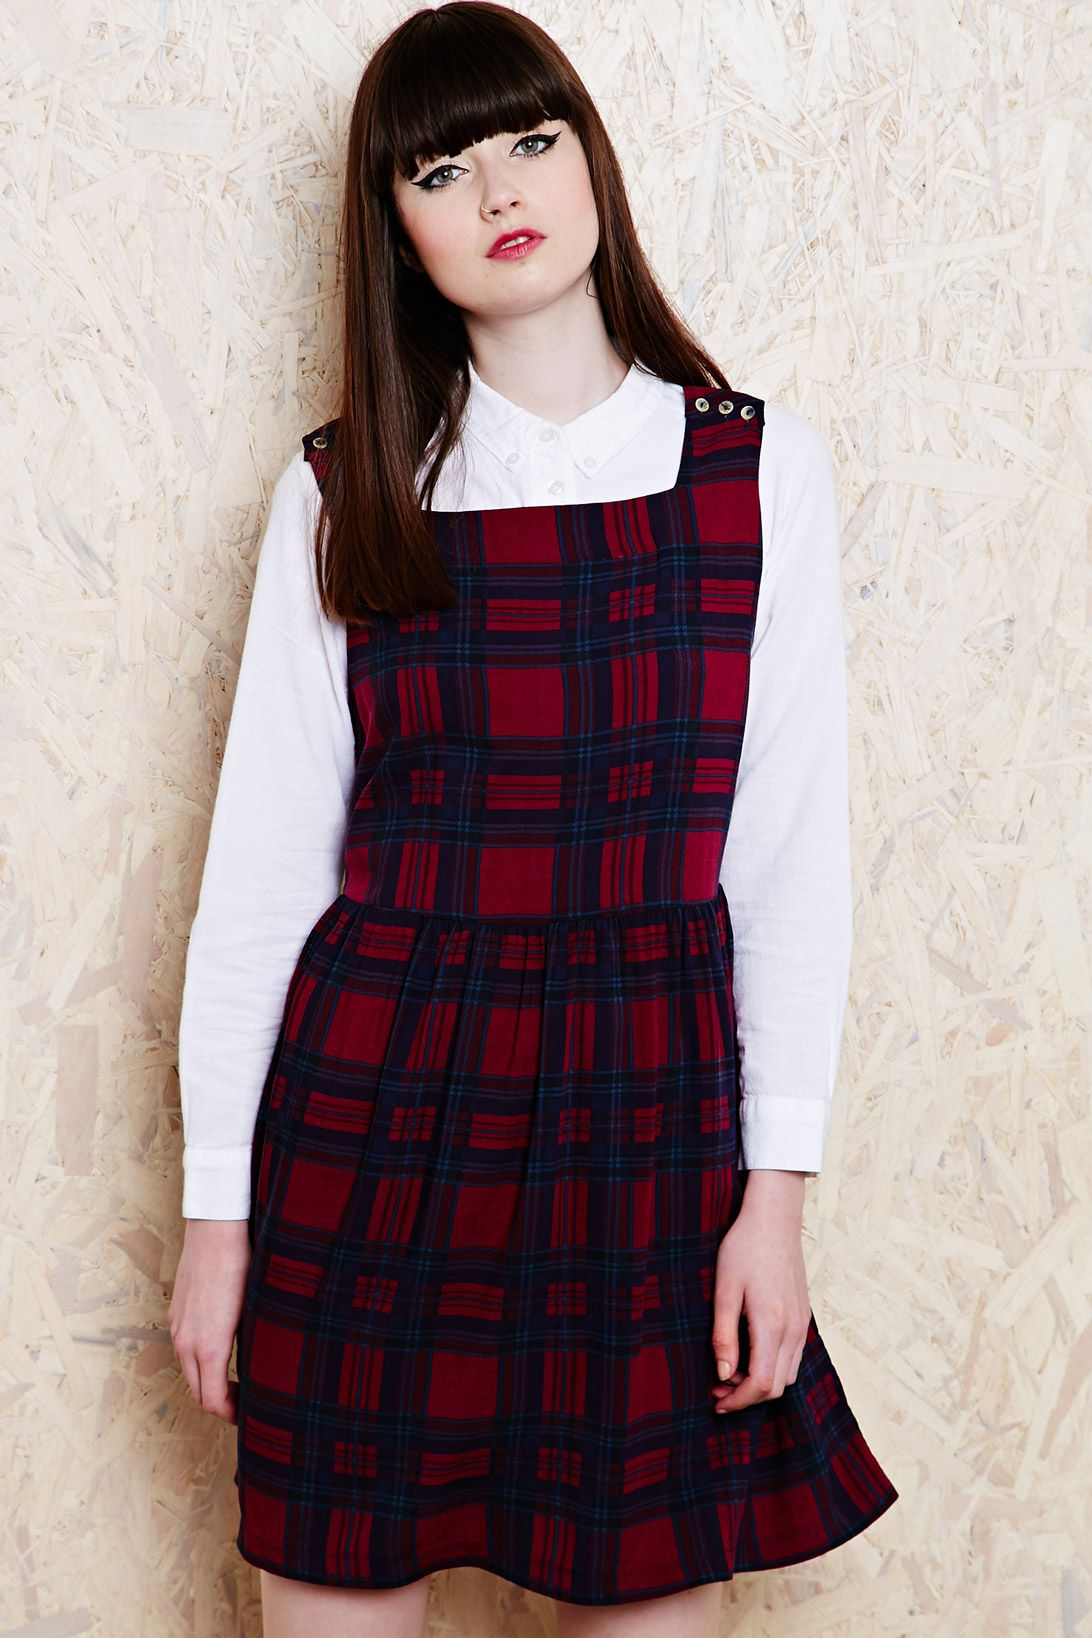 Cooperative Check Babydoll Dress at Urban Outfitters